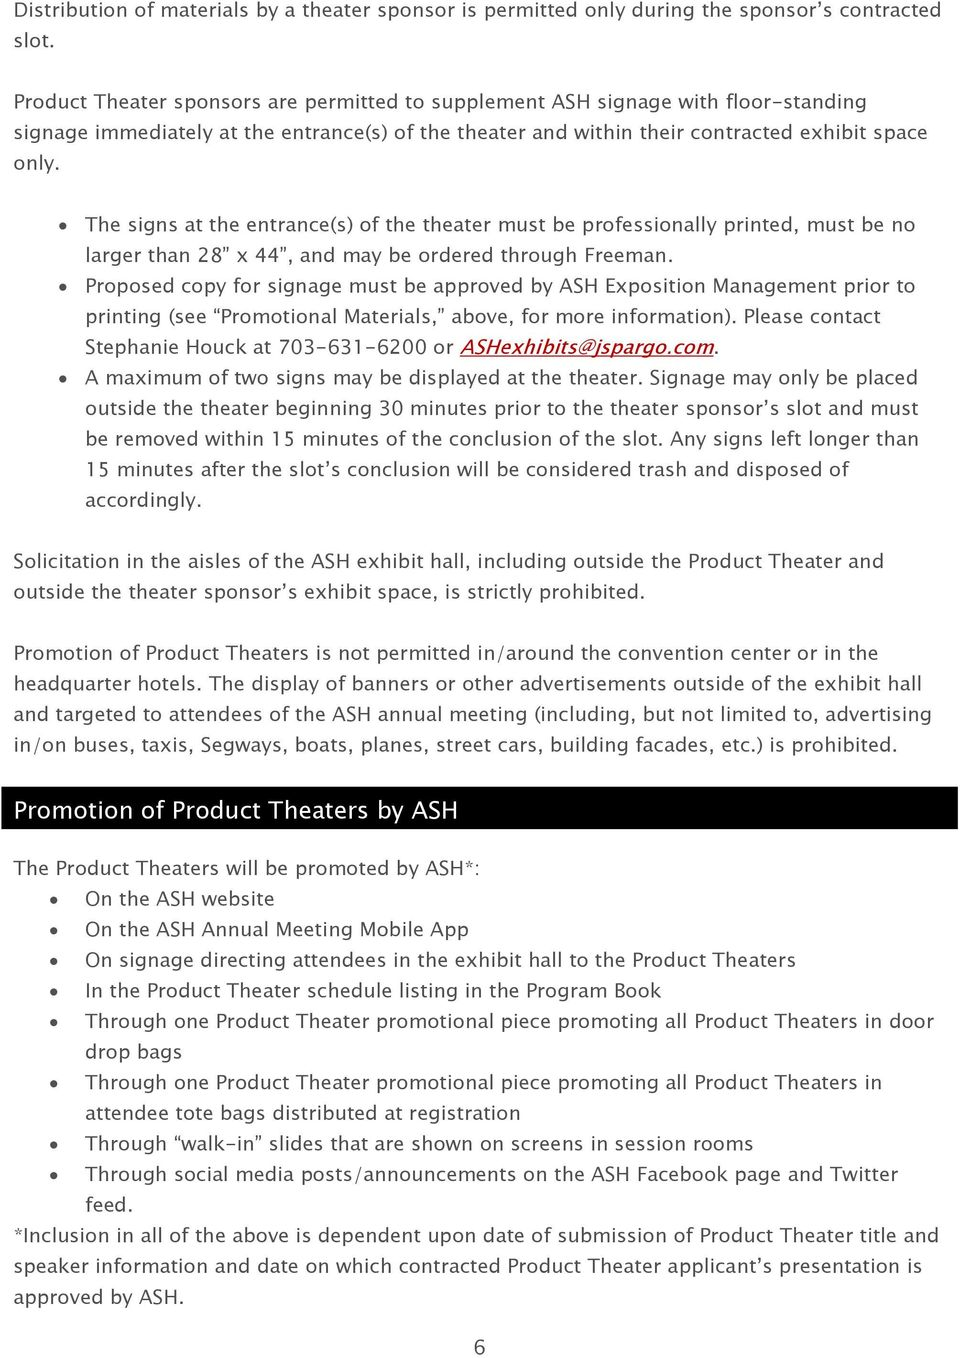 The signs at the entrance(s) of the theater must be professionally printed, must be no larger than 28 x 44, and may be ordered through Freeman.